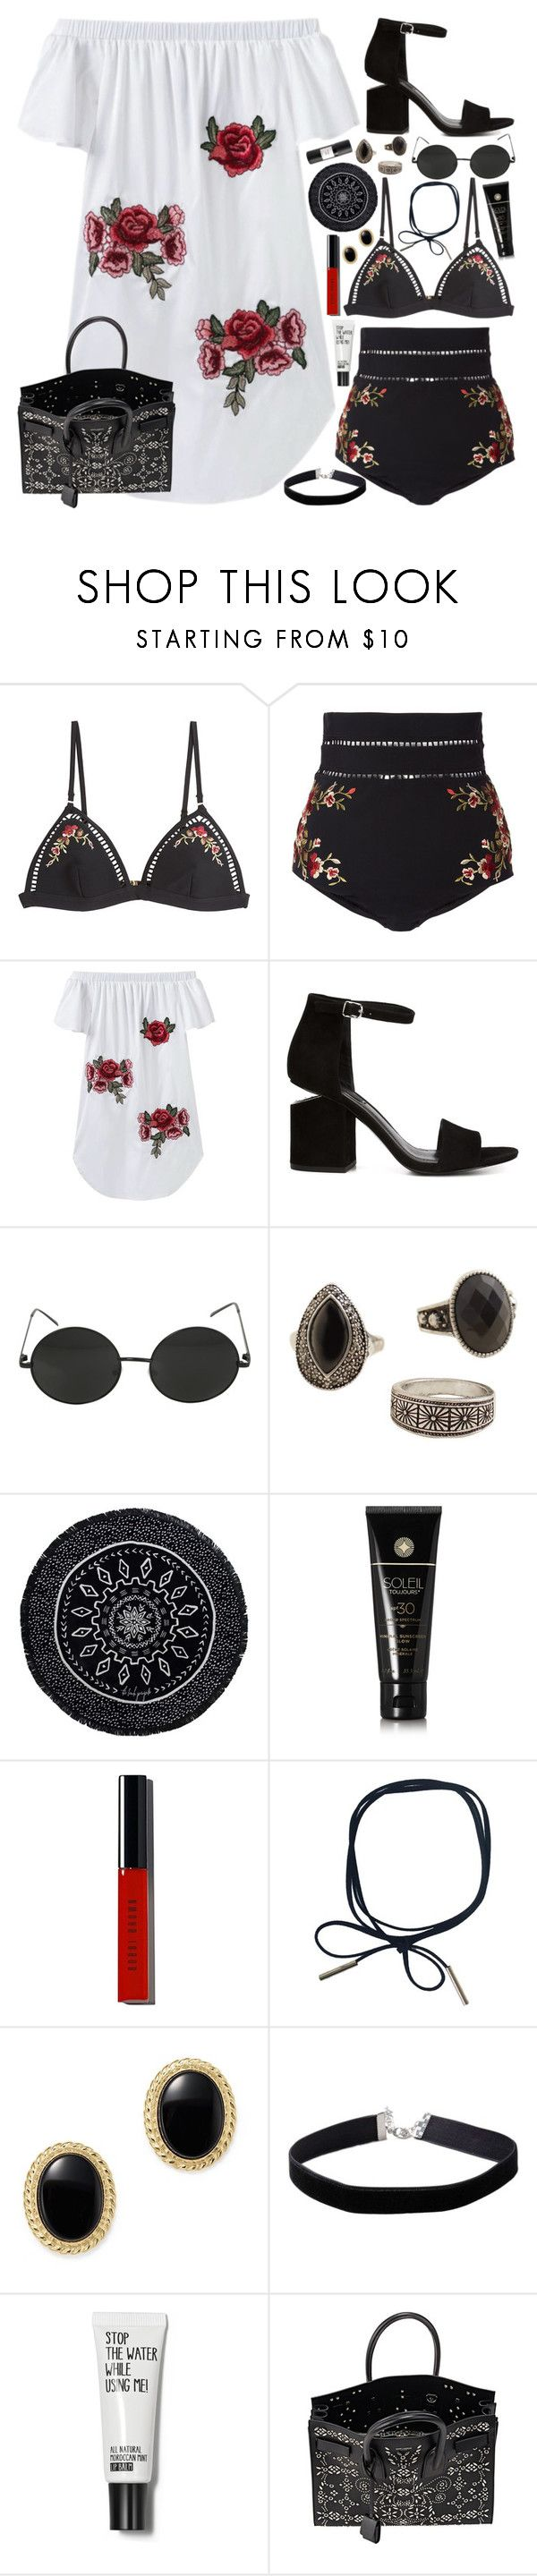 """B A D / /"" by queen-laureen ❤ liked on Polyvore featuring Zimmermann, Alexander Wang, MANGO, The Beach People, Soleil Toujours, Bobbi Brown Cosmetics, Bloomingdale's, Miss Selfridge, Yves Saint Laurent and Eight & Bob"